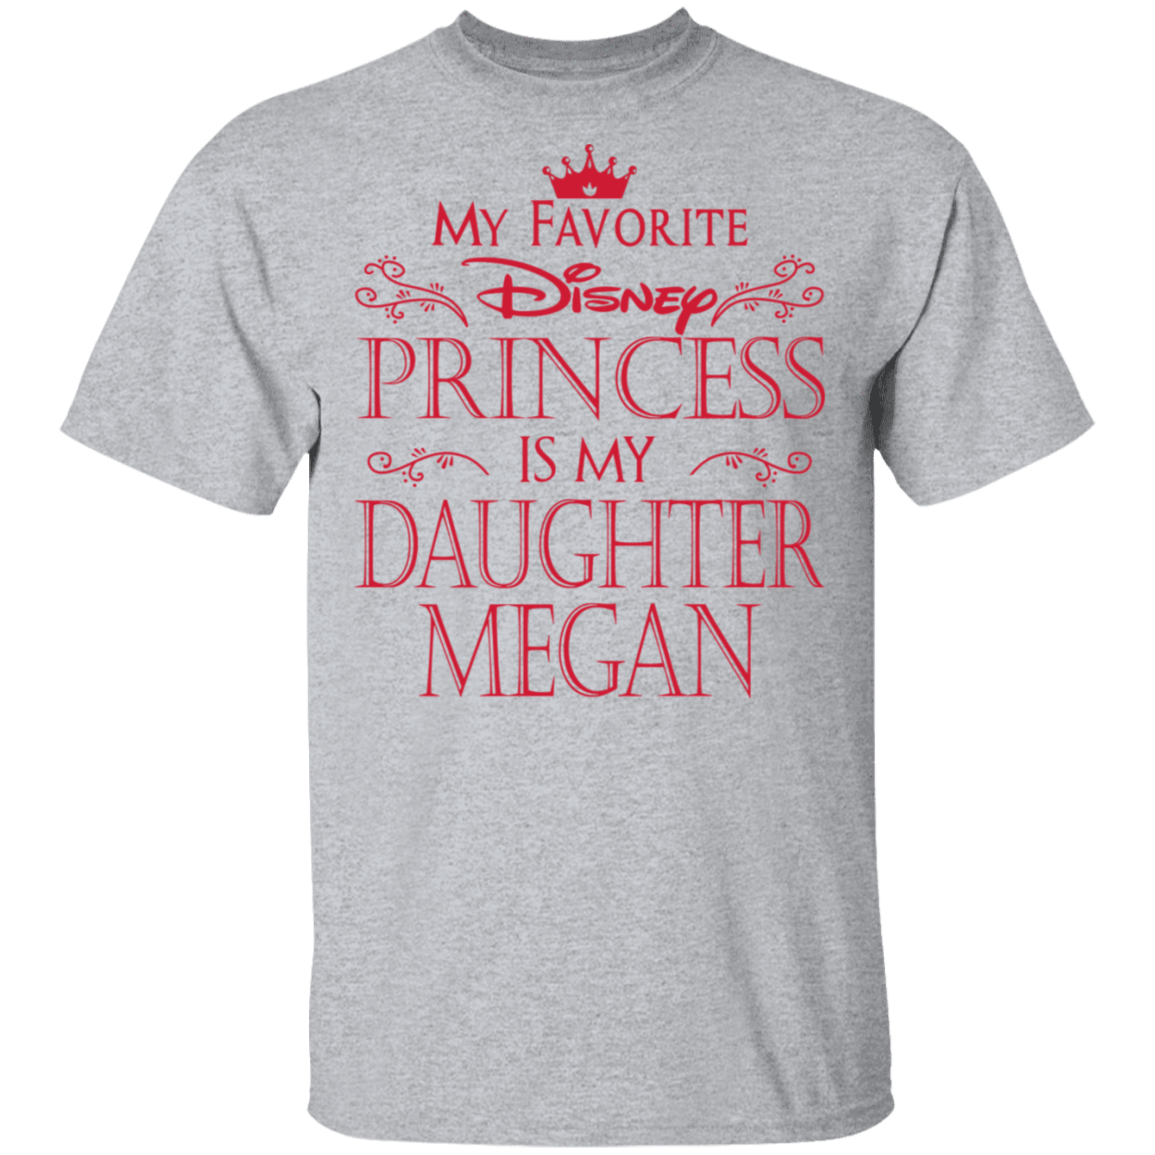 My Favorite Disney Princess Is My Daughter Megan T-Shirts, Hoodies, Tank 1049-9972-81647389-48200 - Tee Ript